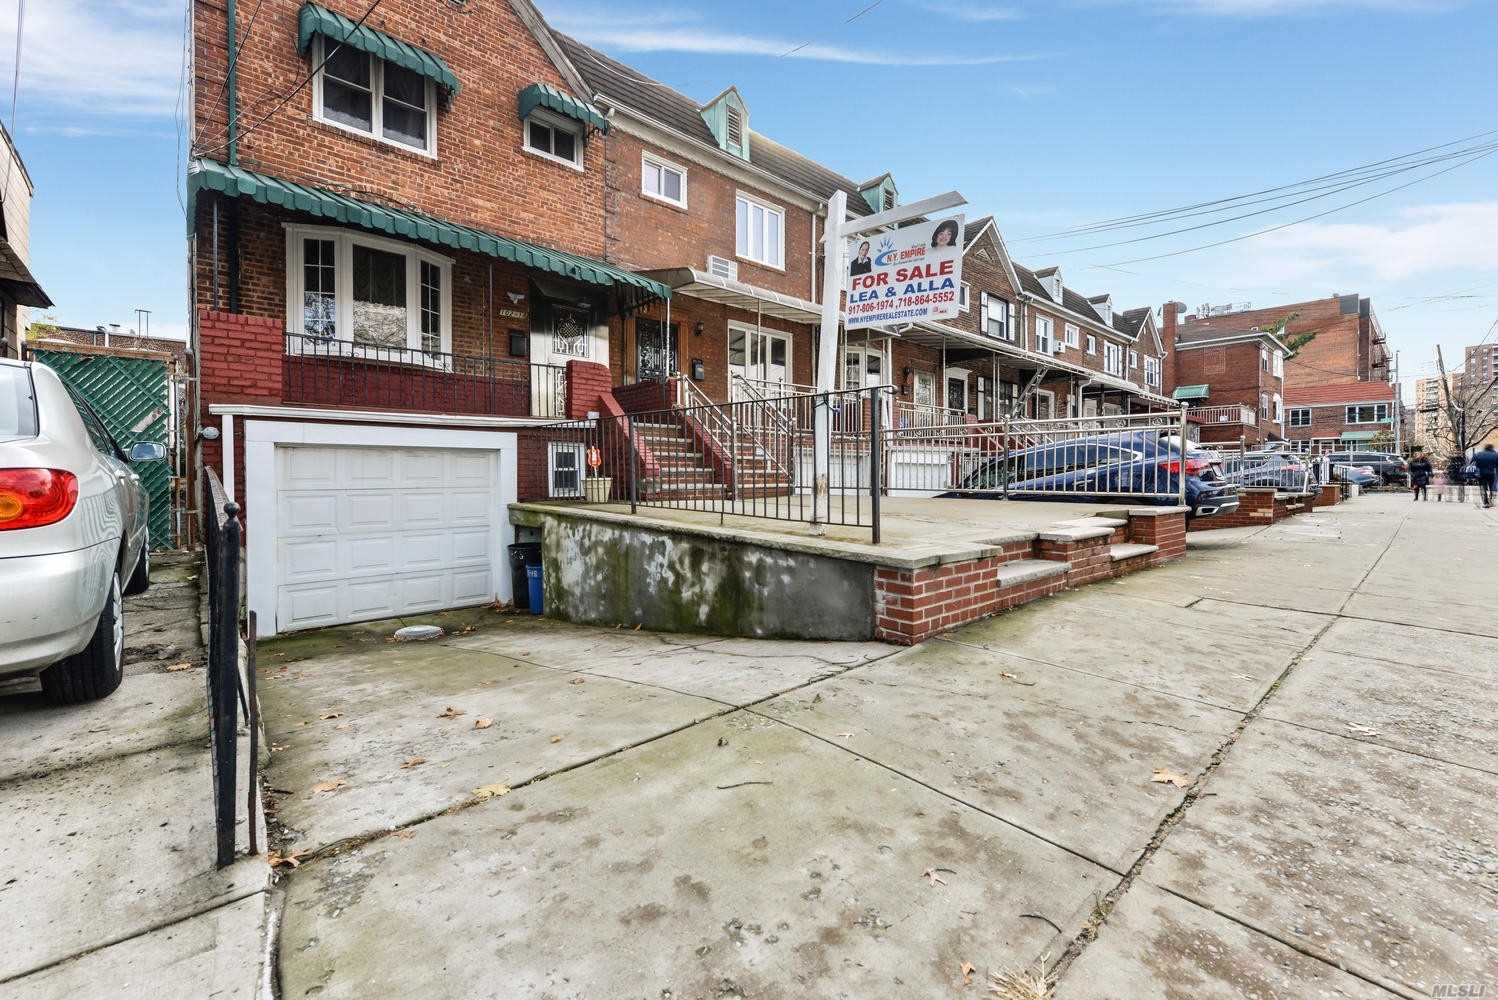 Fully Renovated Semidetached Brick House With 3 Bed 2 Bath Central Air, European Kitchen Stainless Steal Appliances, Full Finished Basement With Separate Entrance Front Garage Backyard, Steps To Q.B. Trains , Buses Malls, Schools. Etc.....